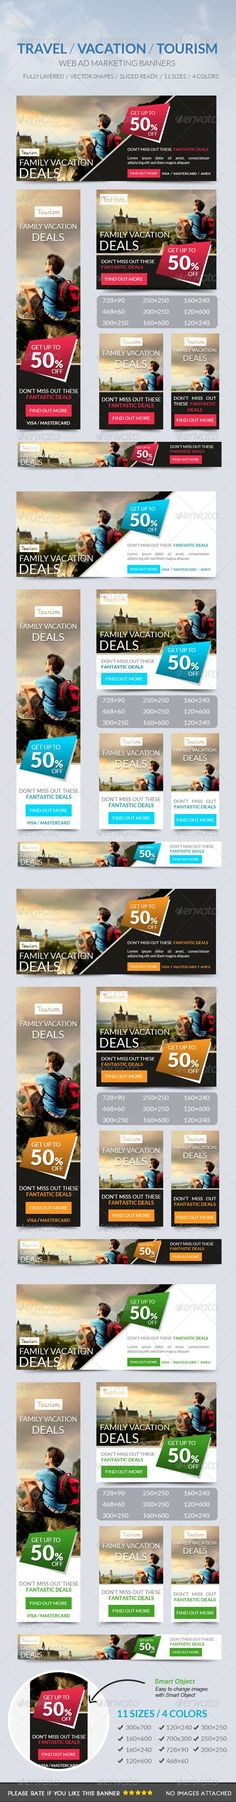 Web Banners for Travel and Tourism.  Used for Ad Marketing purposes as well